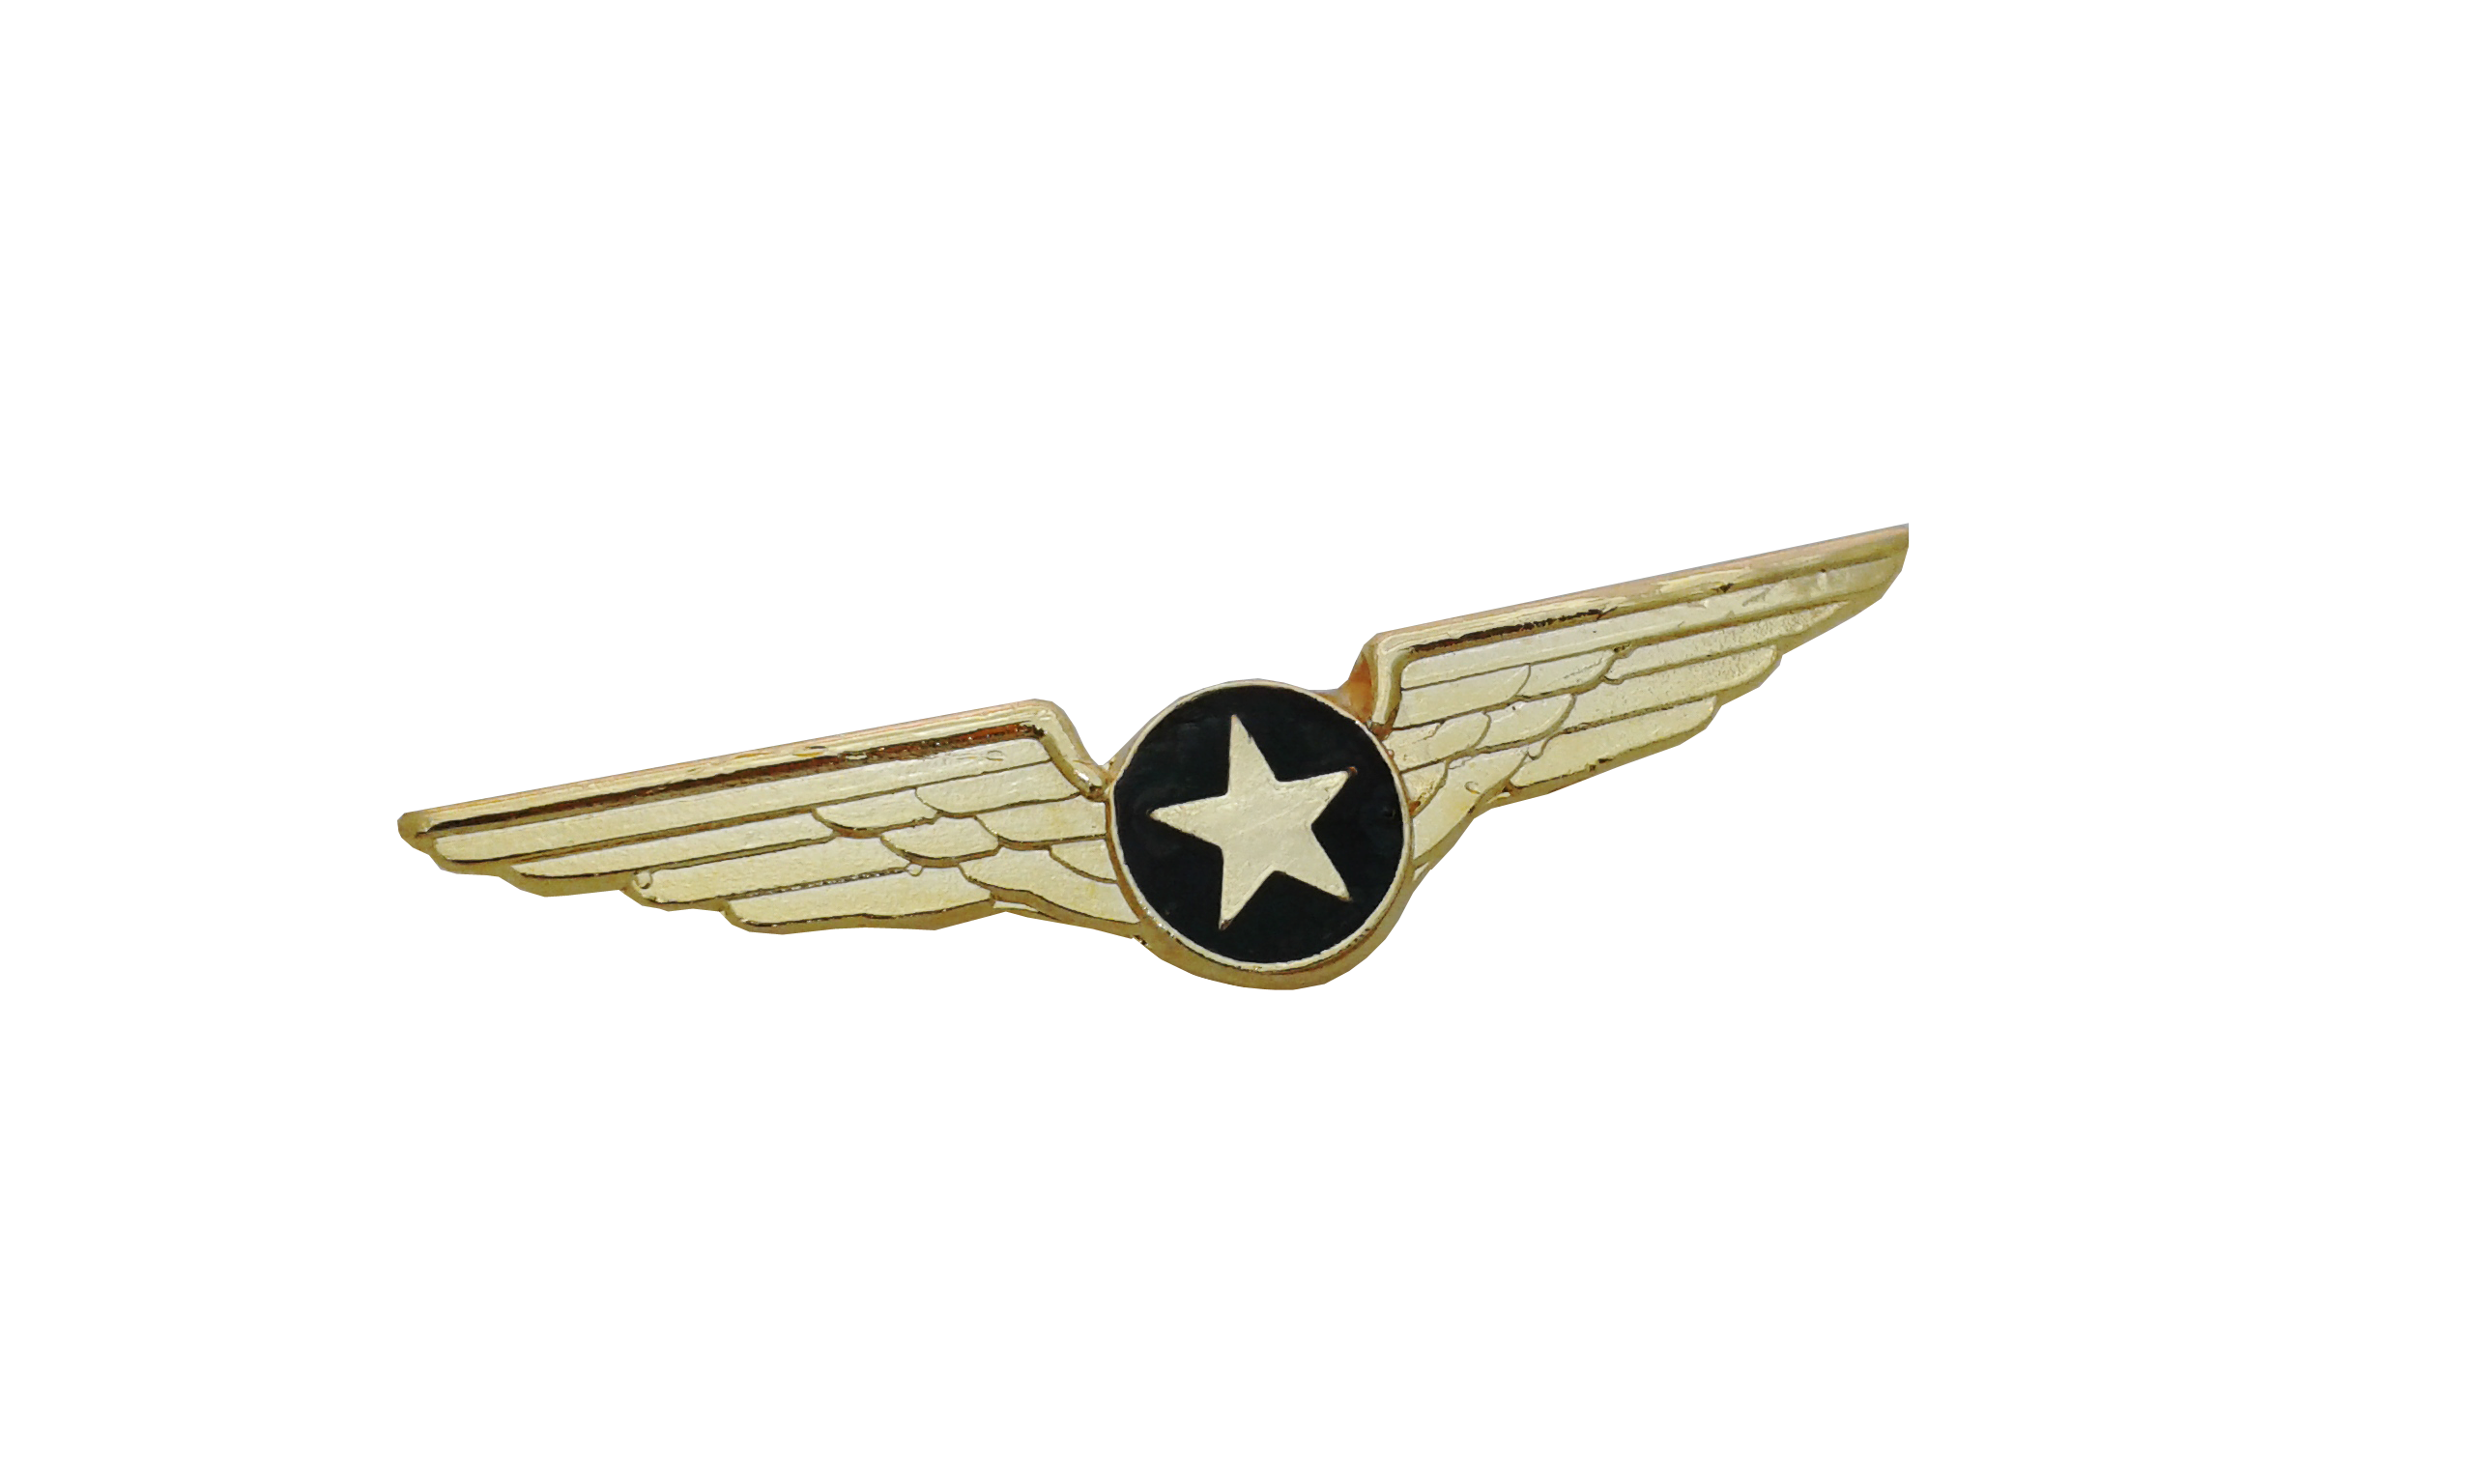 Airline wings logo muck. Steampunk clipart pilot badge